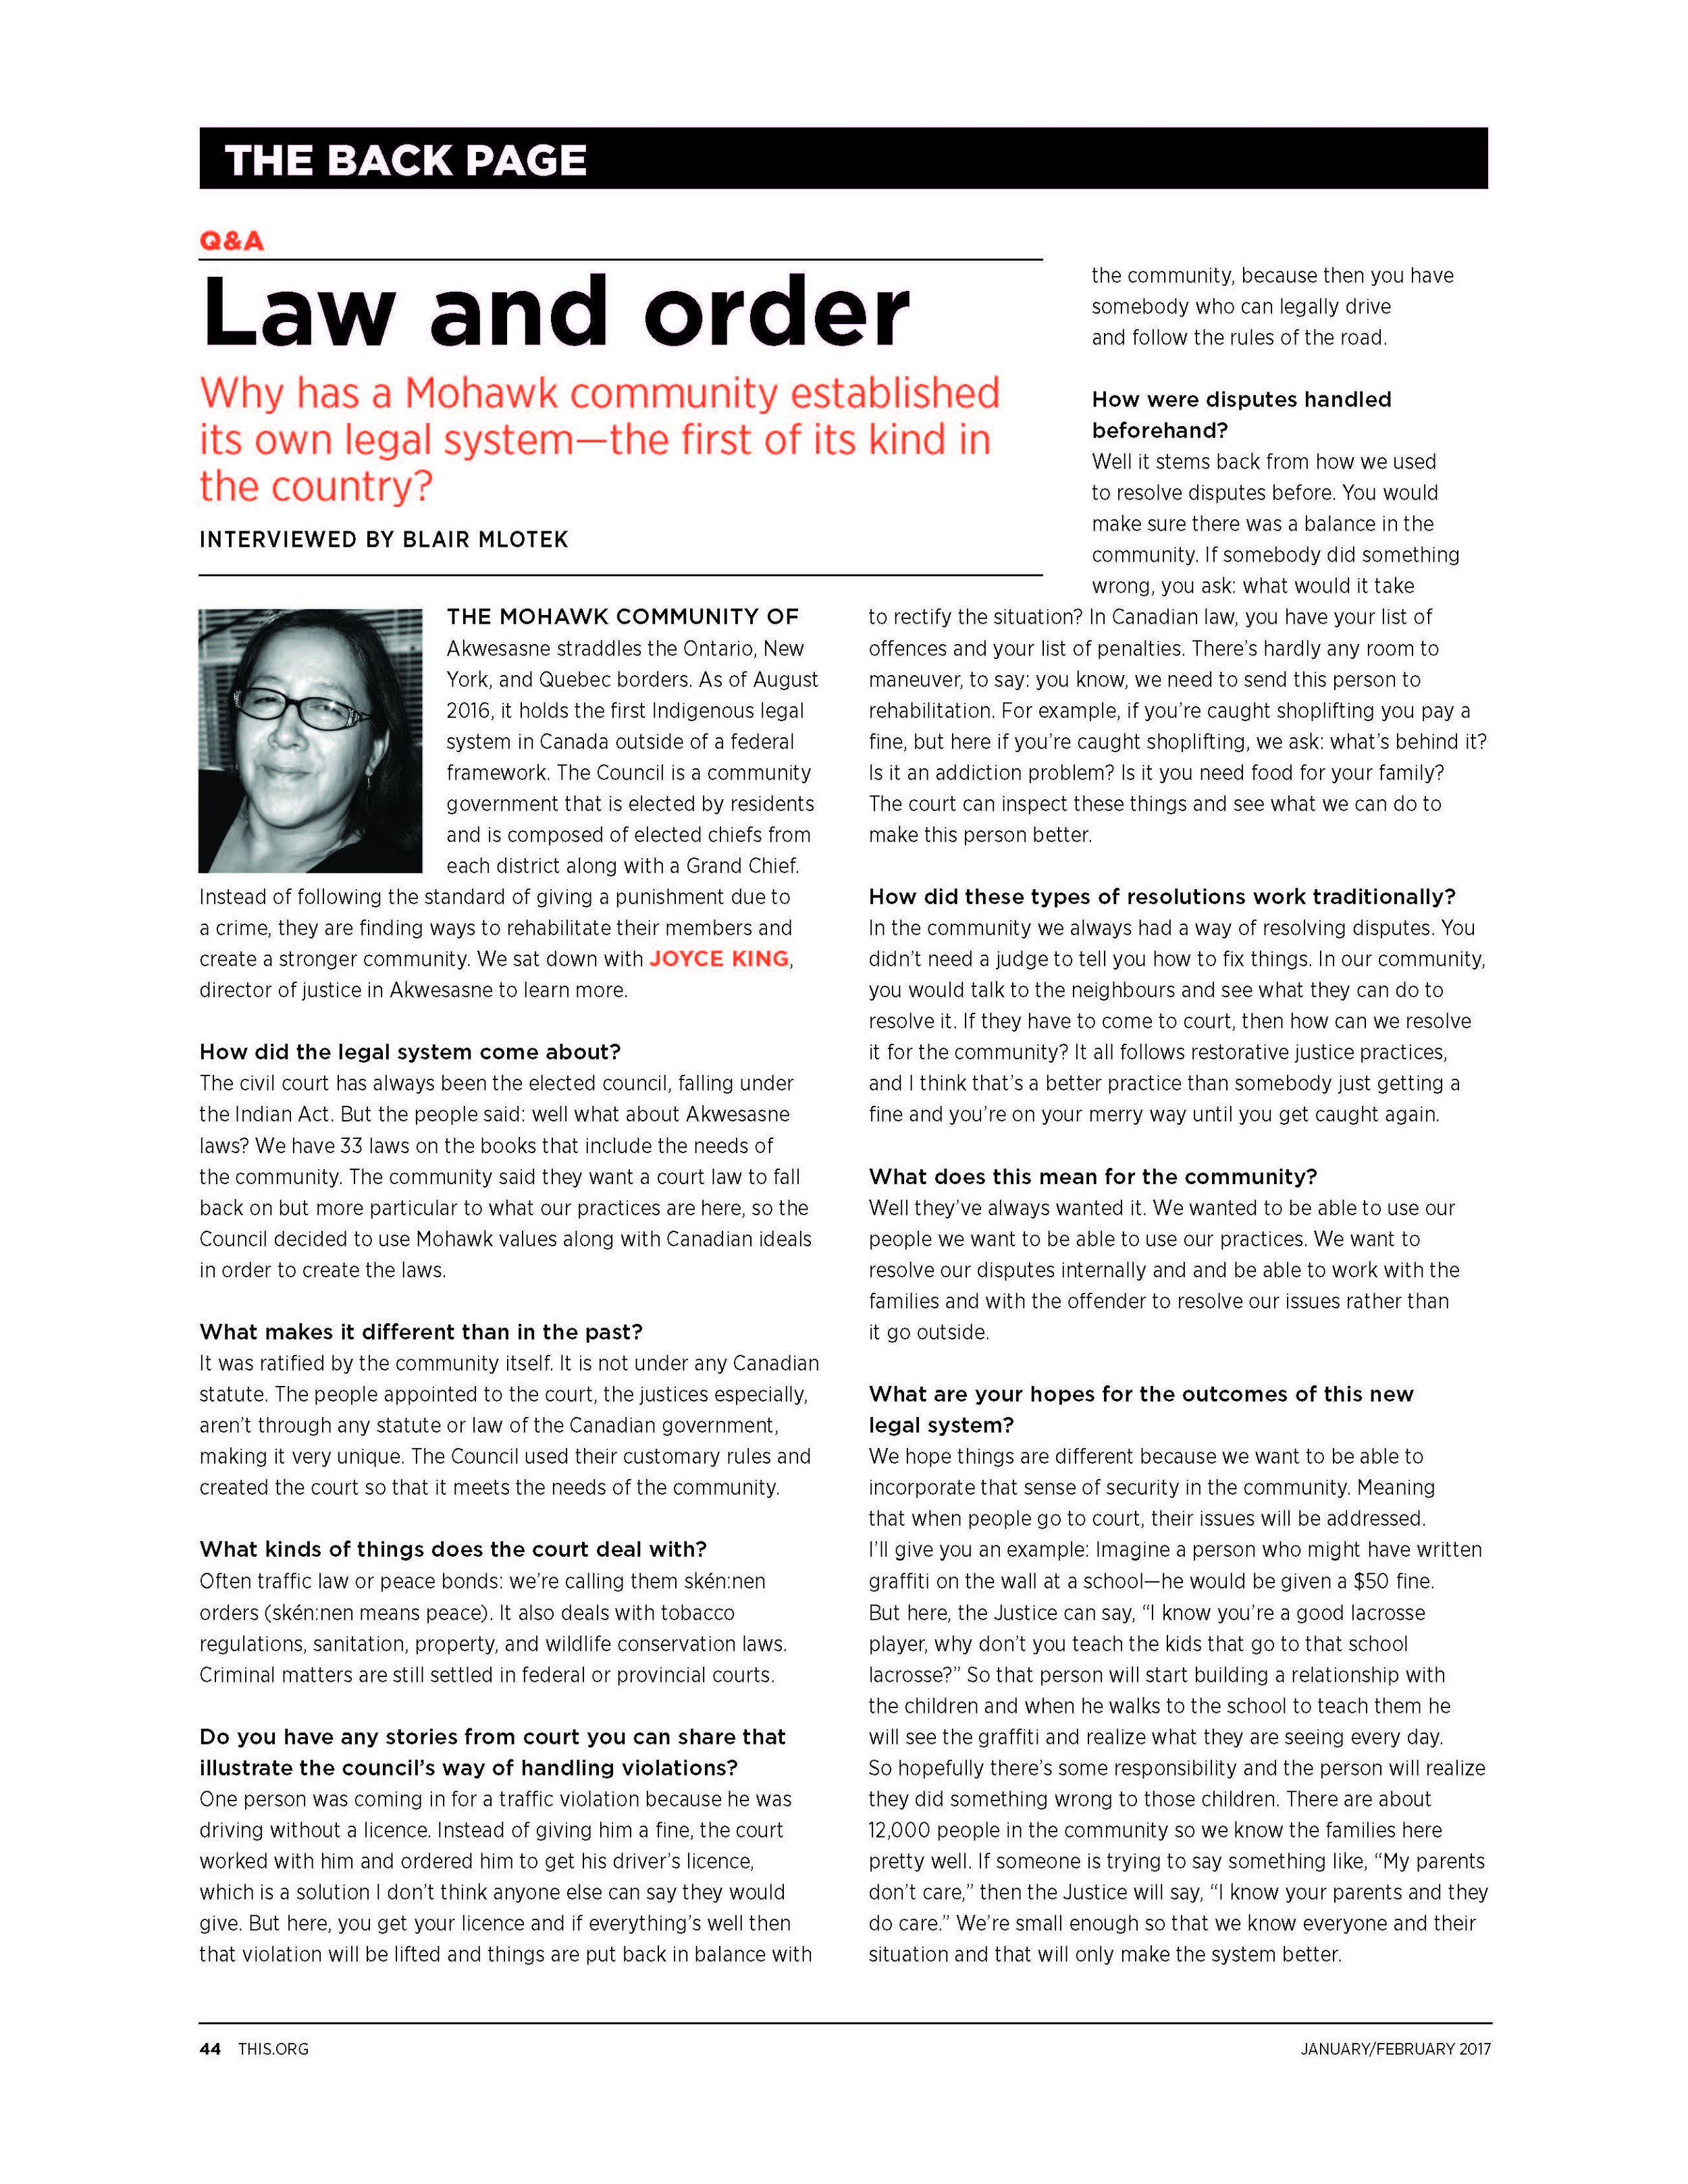 this magazine - Law and Order